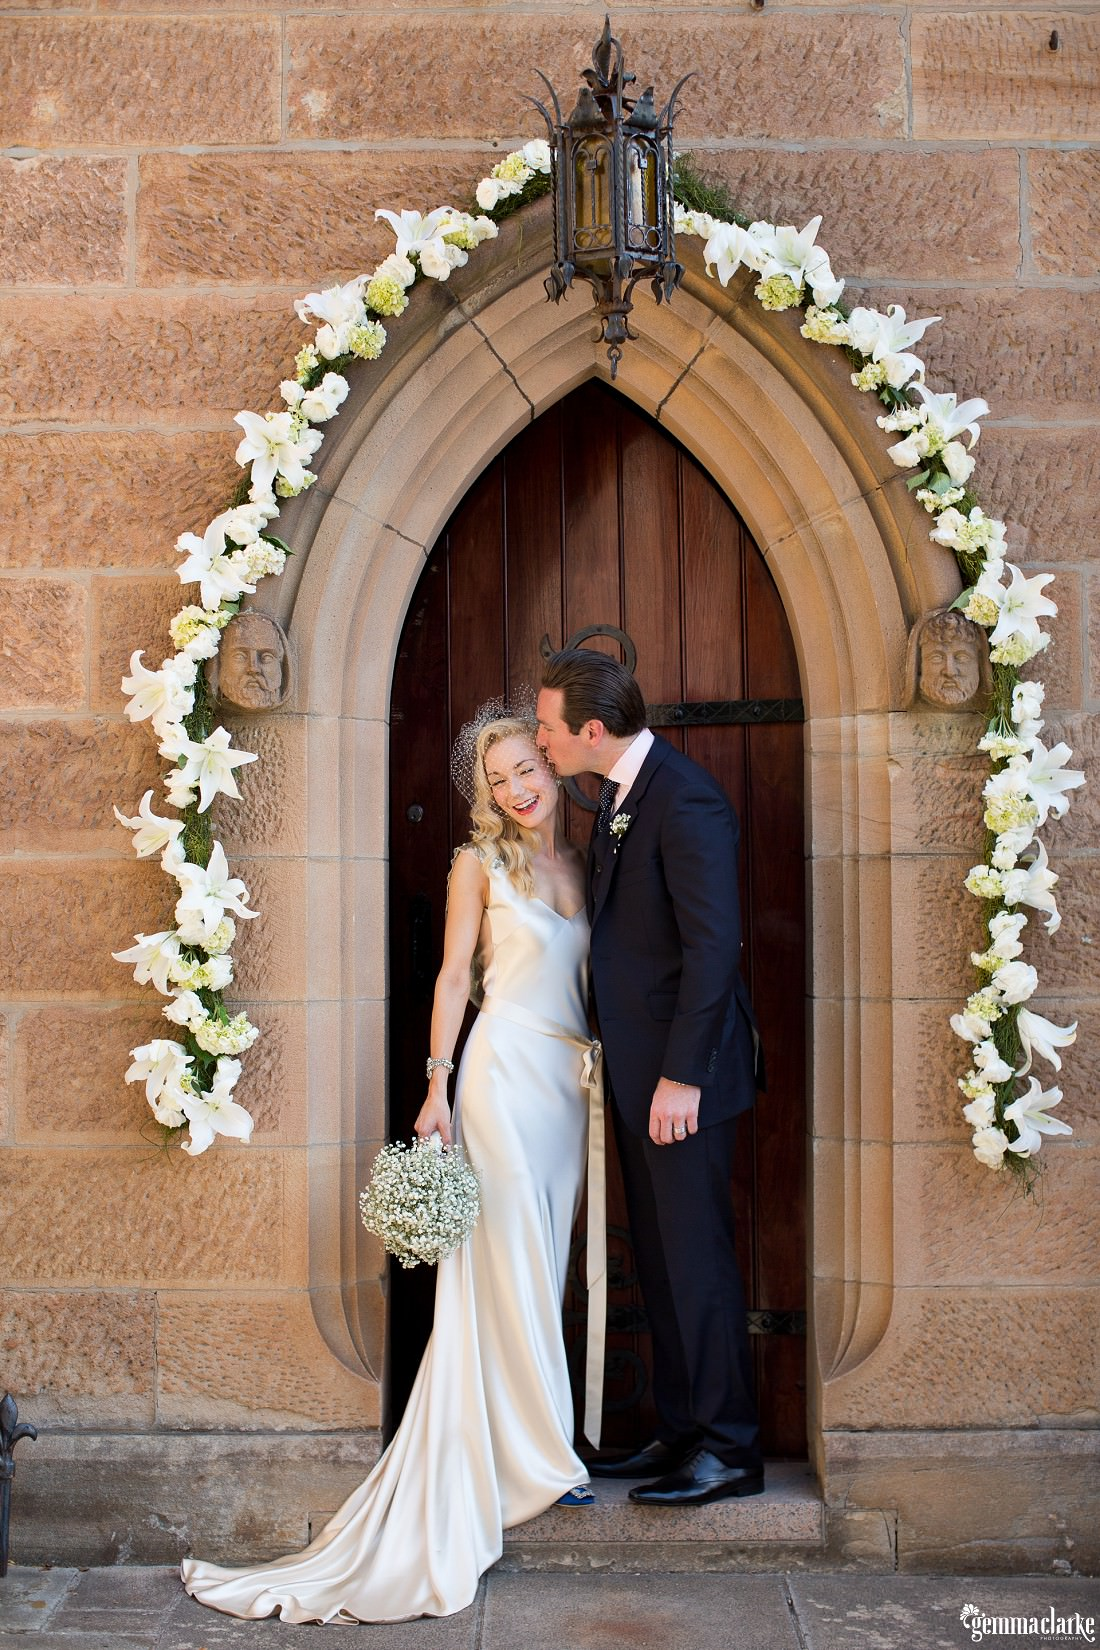 A groom kisses his smiling bride on the forehead as they stand by an arched church door lined with white flowers - Eastern Suburbs Wedding